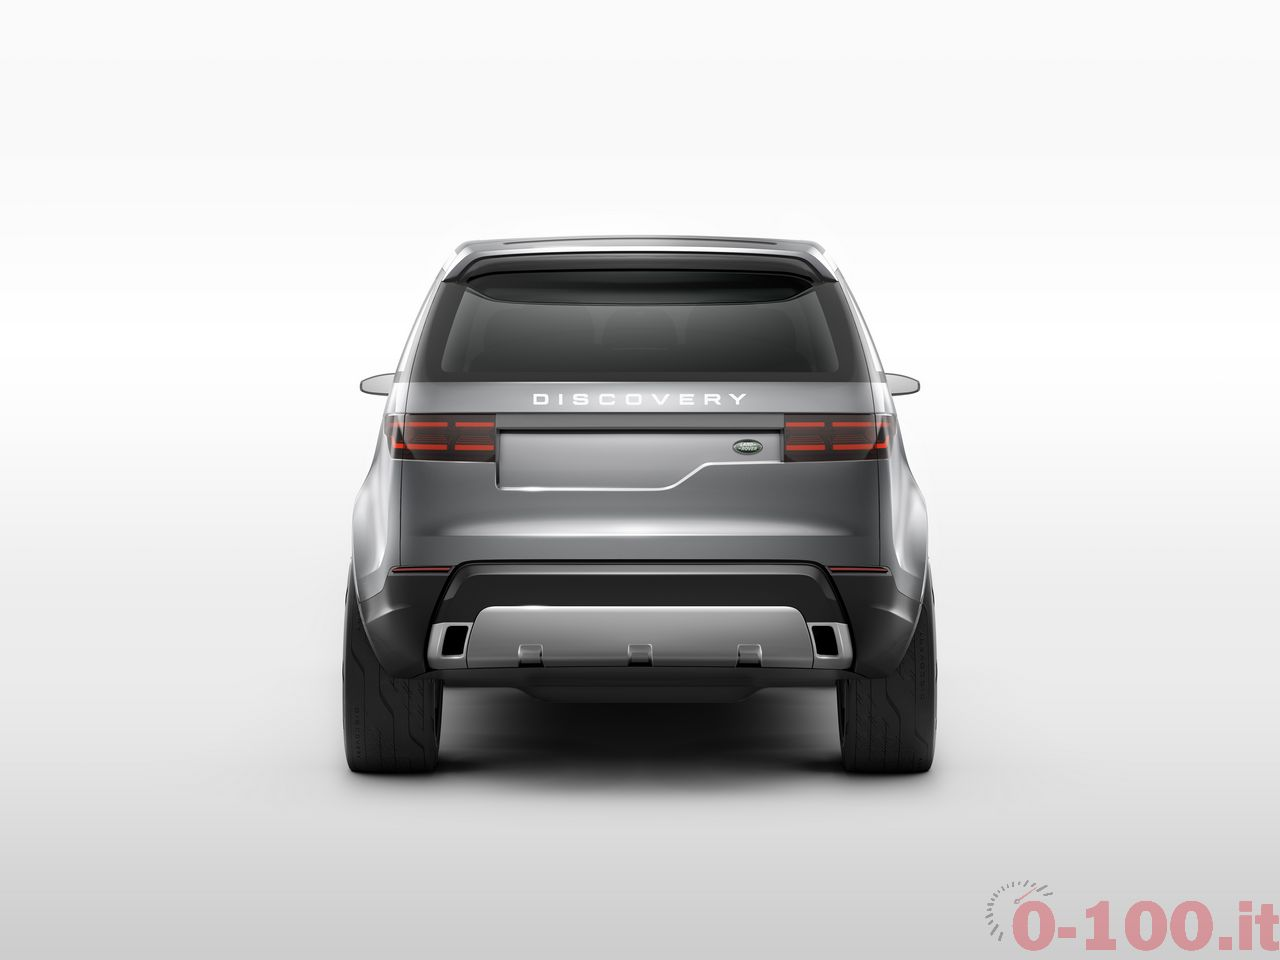 land-rover-discovery-vision-concept-suv-baselworld-2014_0-100_7